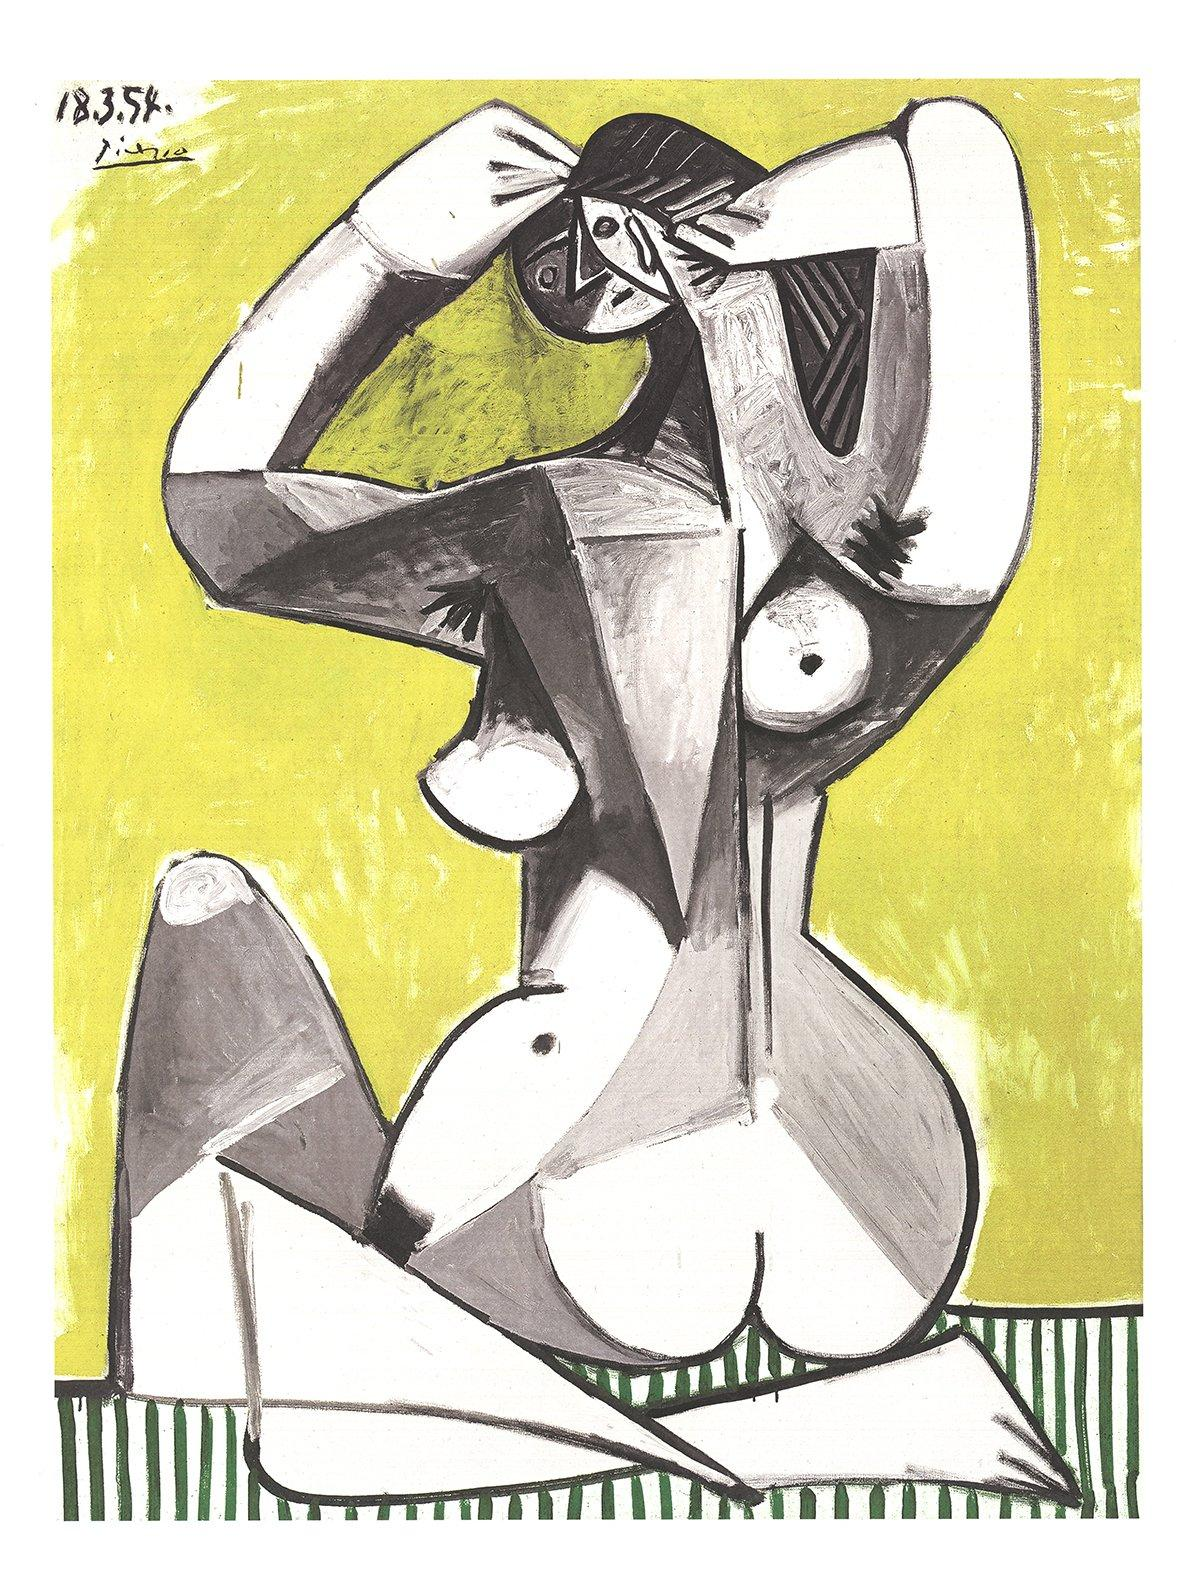 2002 Pablo Picasso 'Nu Accroupi' Cubism Gray,Yellow,White,Black & White Germany